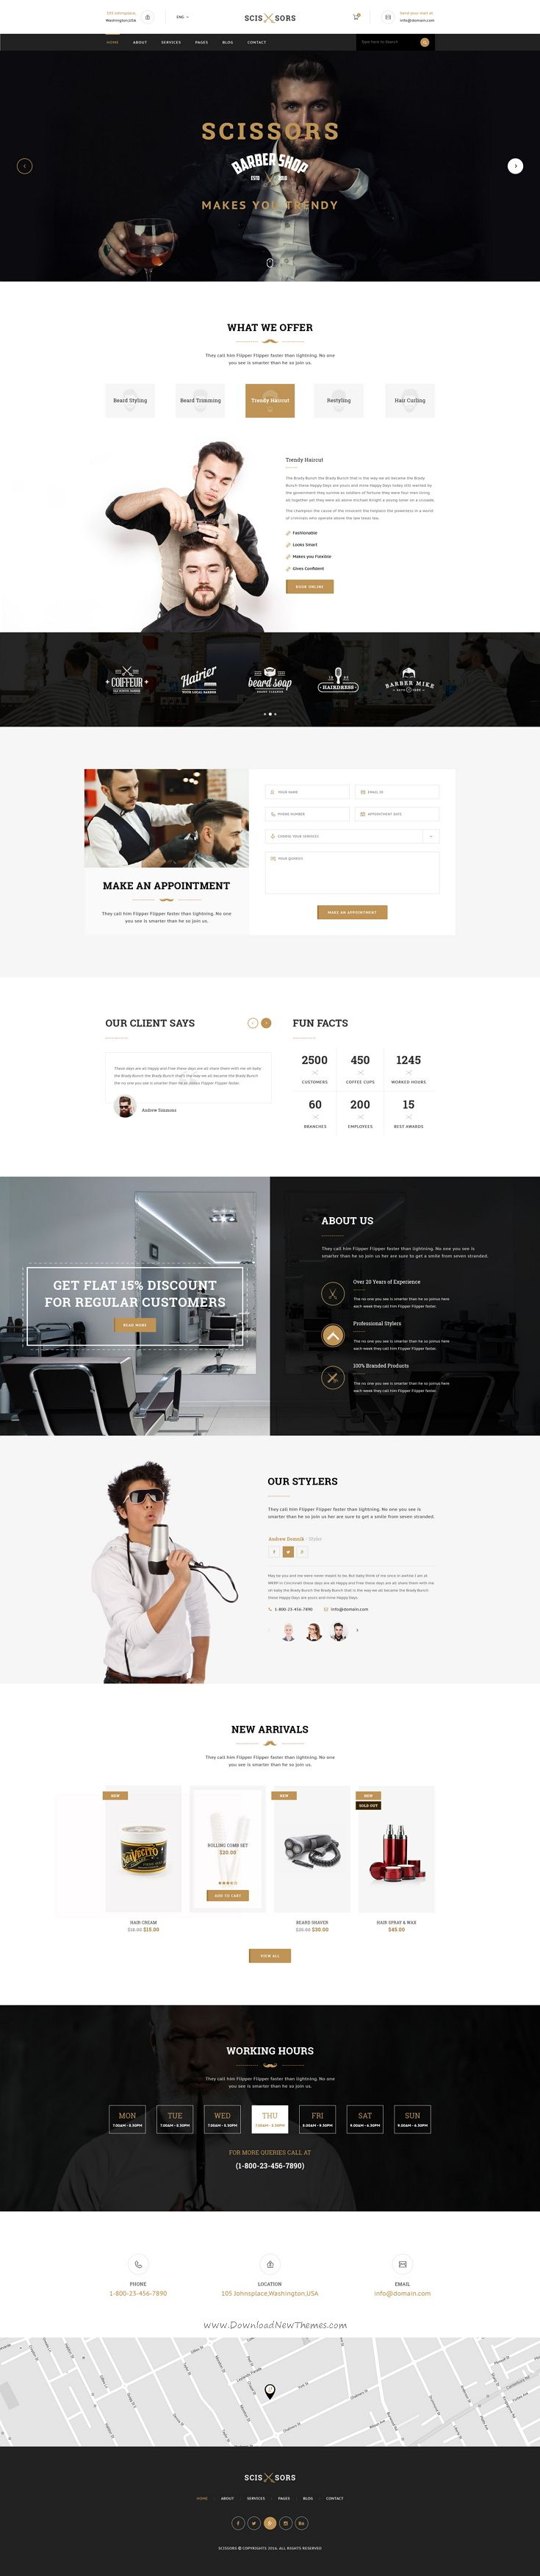 Scissors : Salon & Hair Styling PSD Template suitable for all types of #Salon and Hair Styling businesses. That Includes totally 20 Pages. #barbershop #psdtemplate